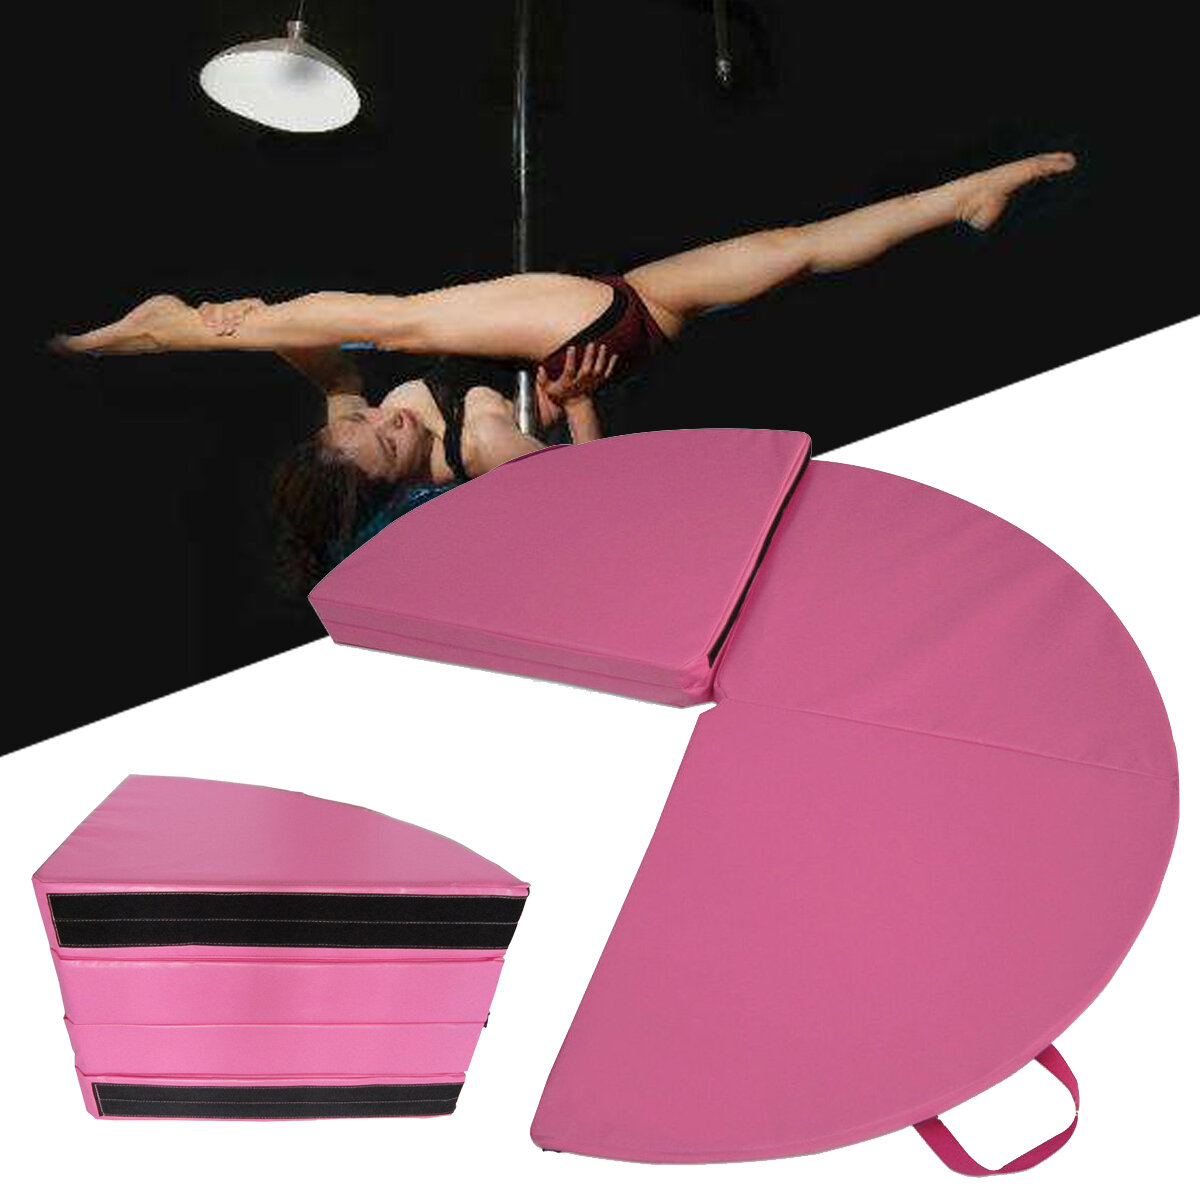 62x1.1inch Portable 4 Folding Pole Dance Safety Mat Floor Home Gym Exercise Fitness Pad фото